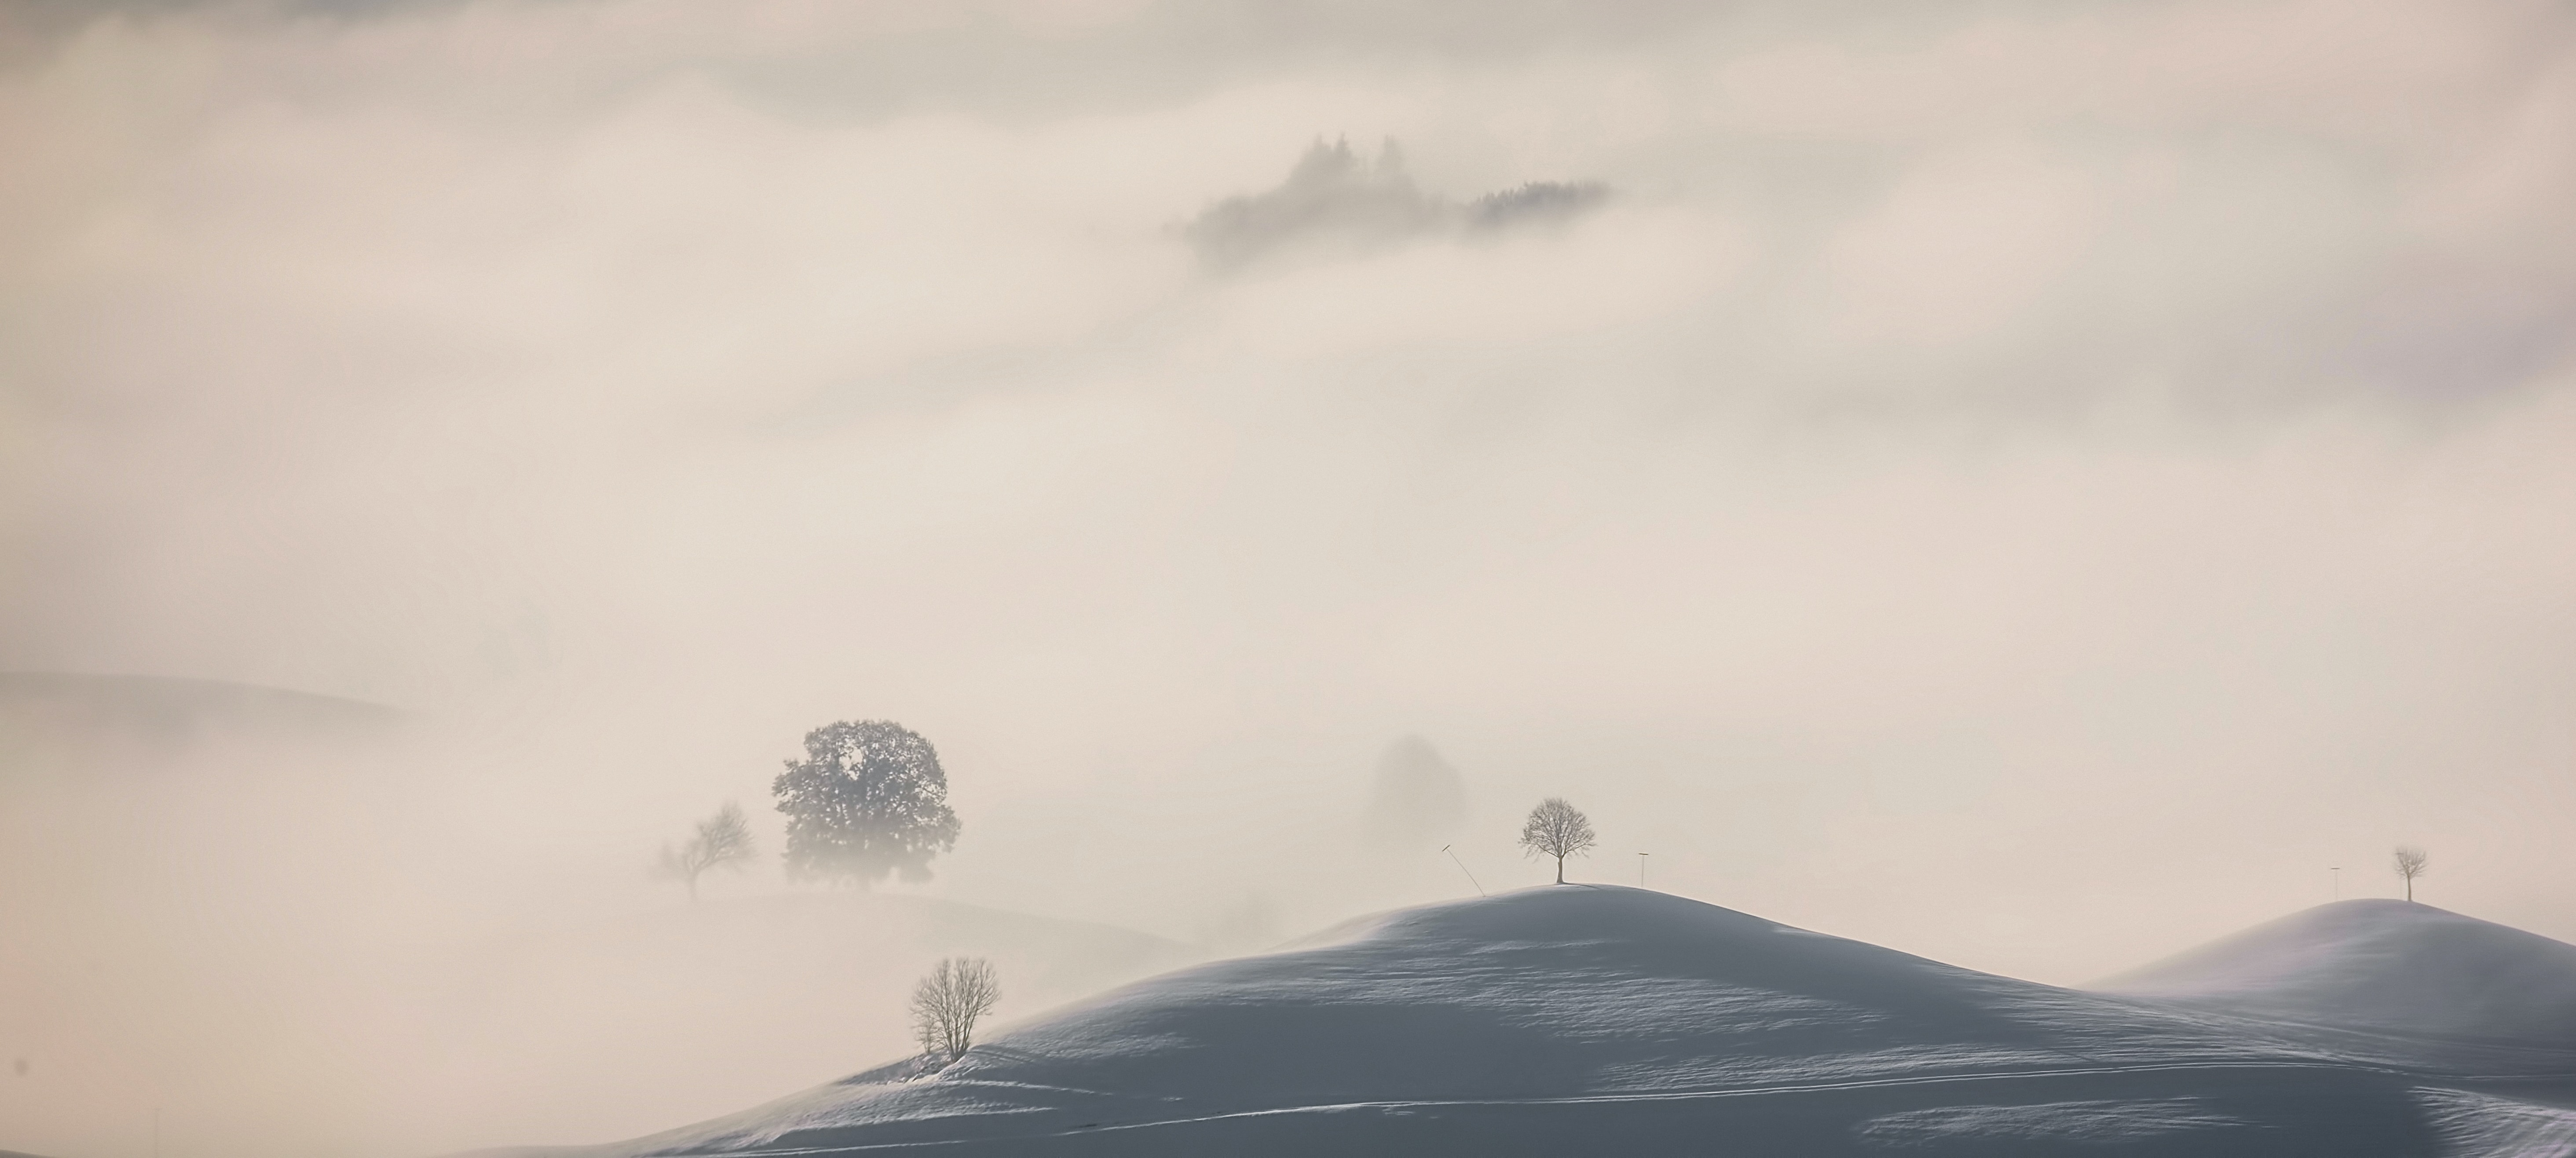 Fog over rolling hills and isolated trees in Hirzel